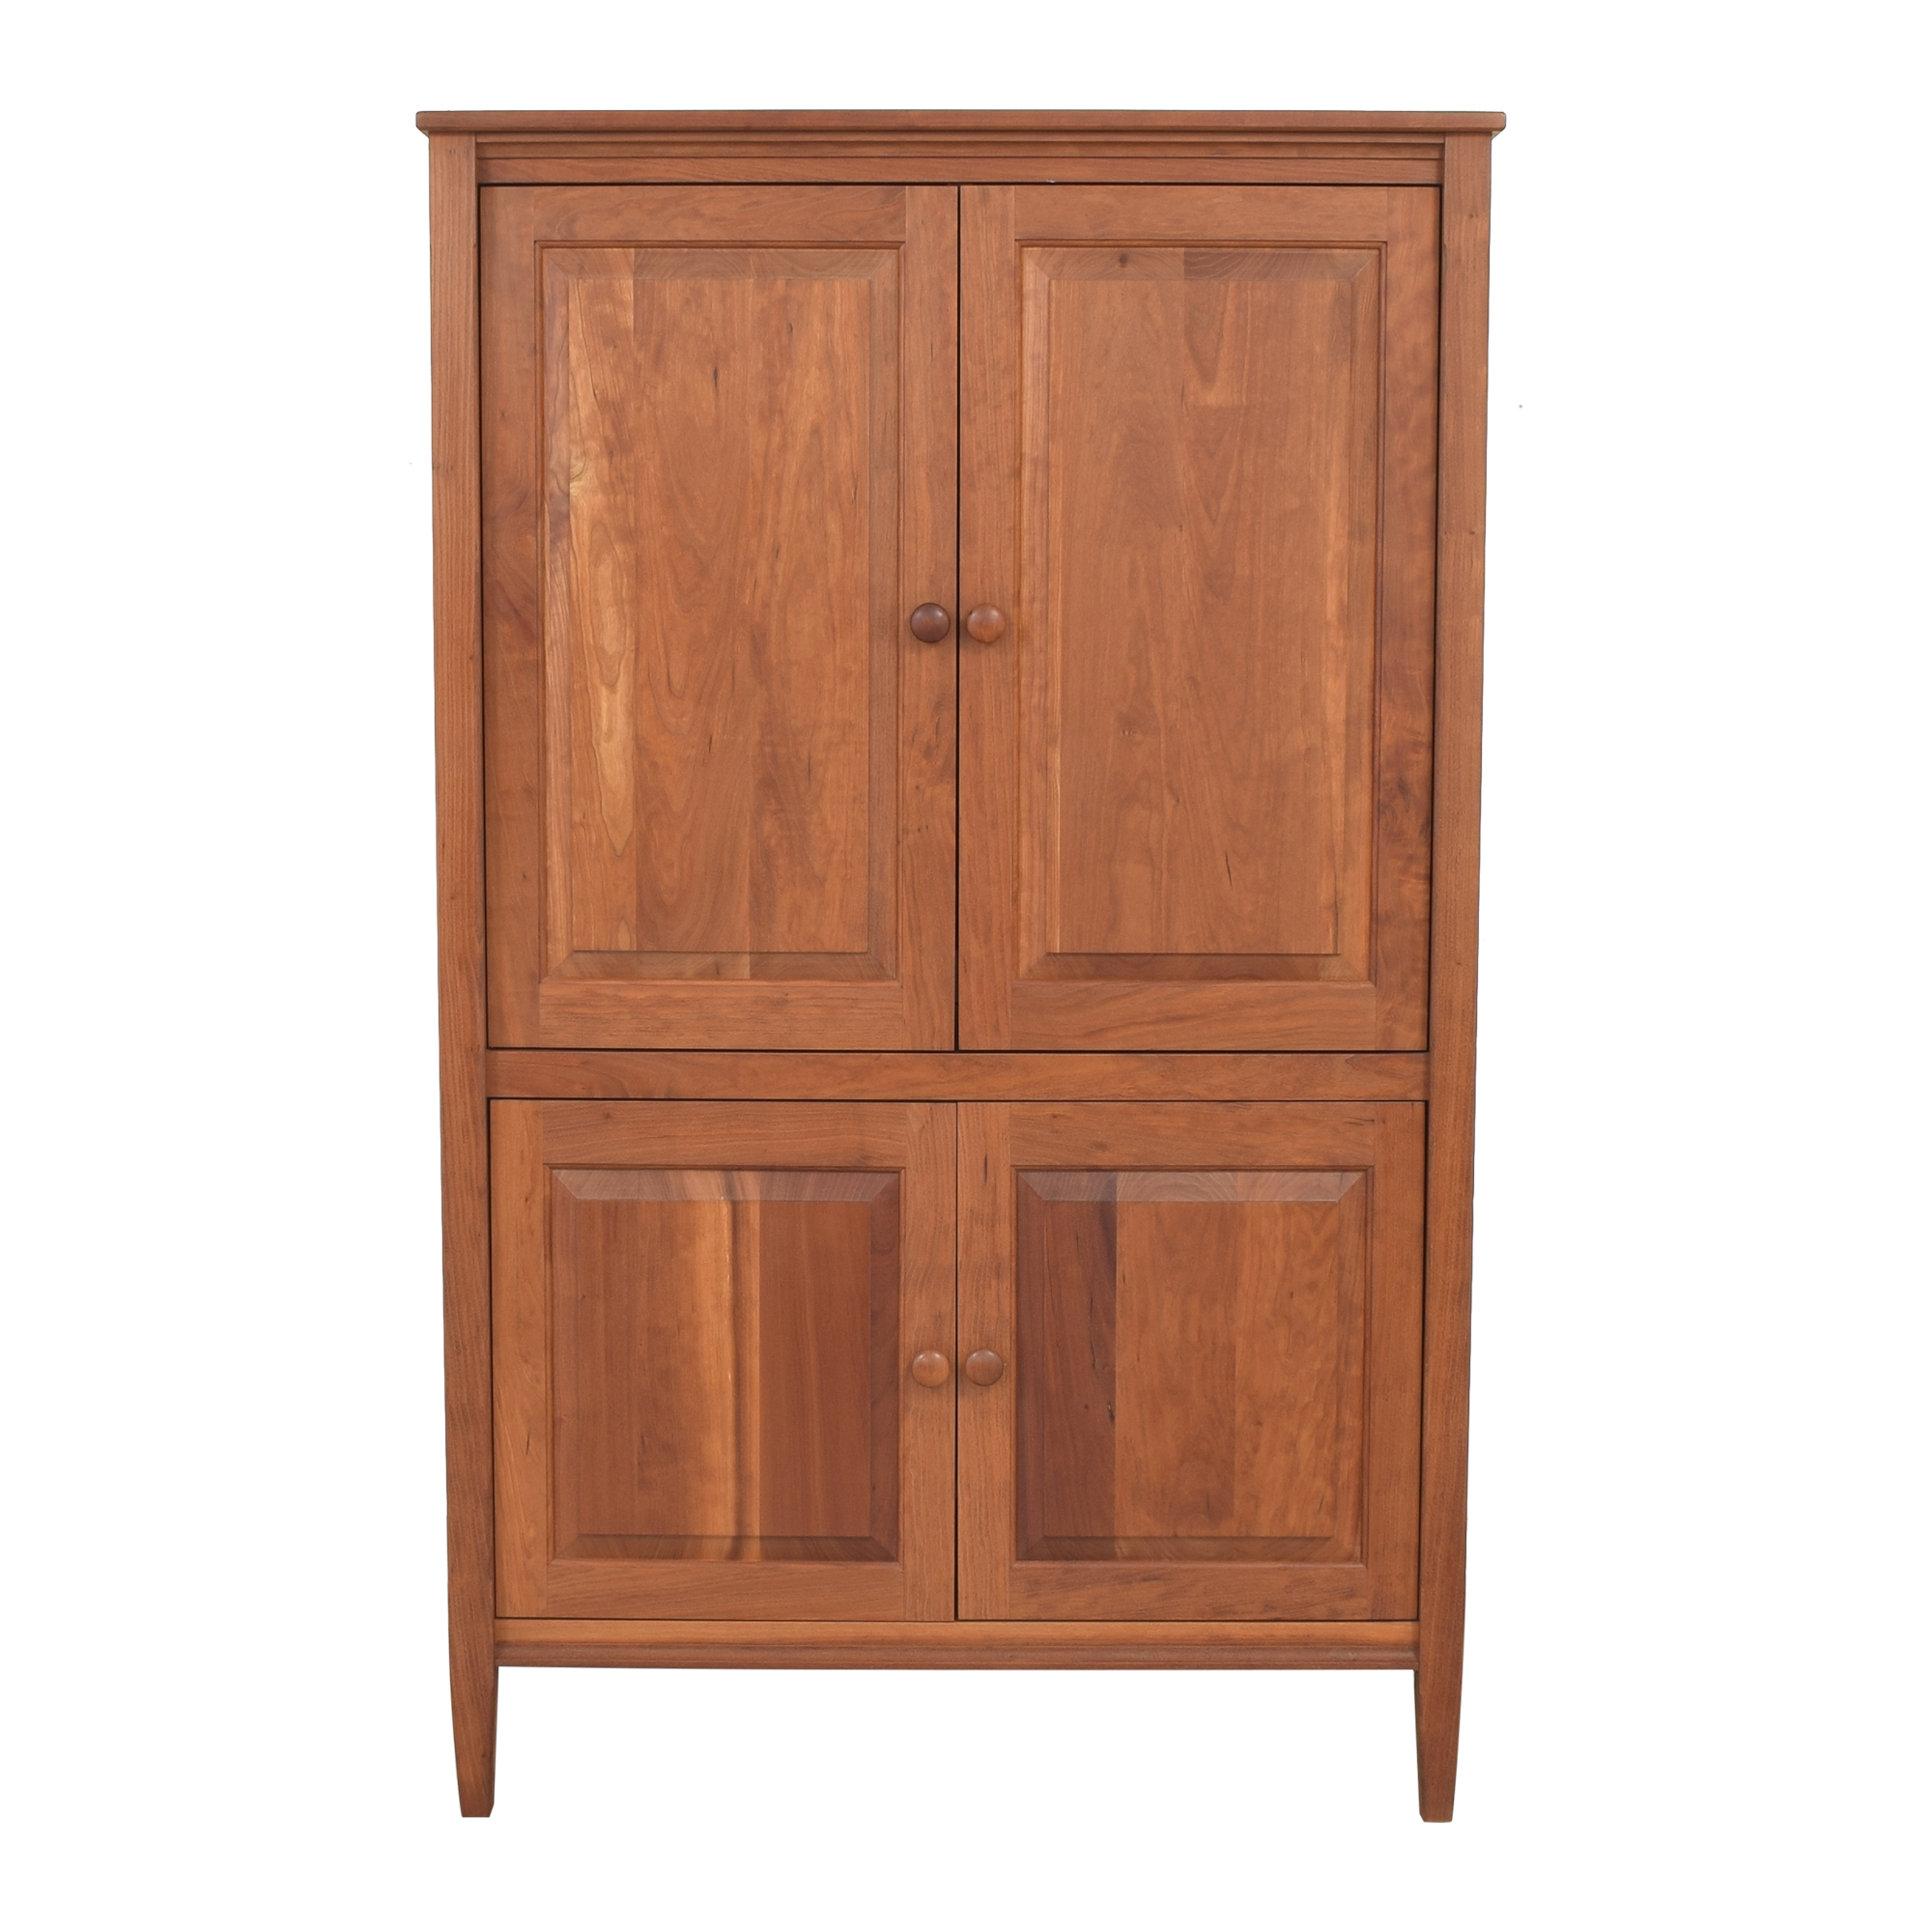 Scott Jordan Furniture Scott Jordan Furniture Mission Armoire ct